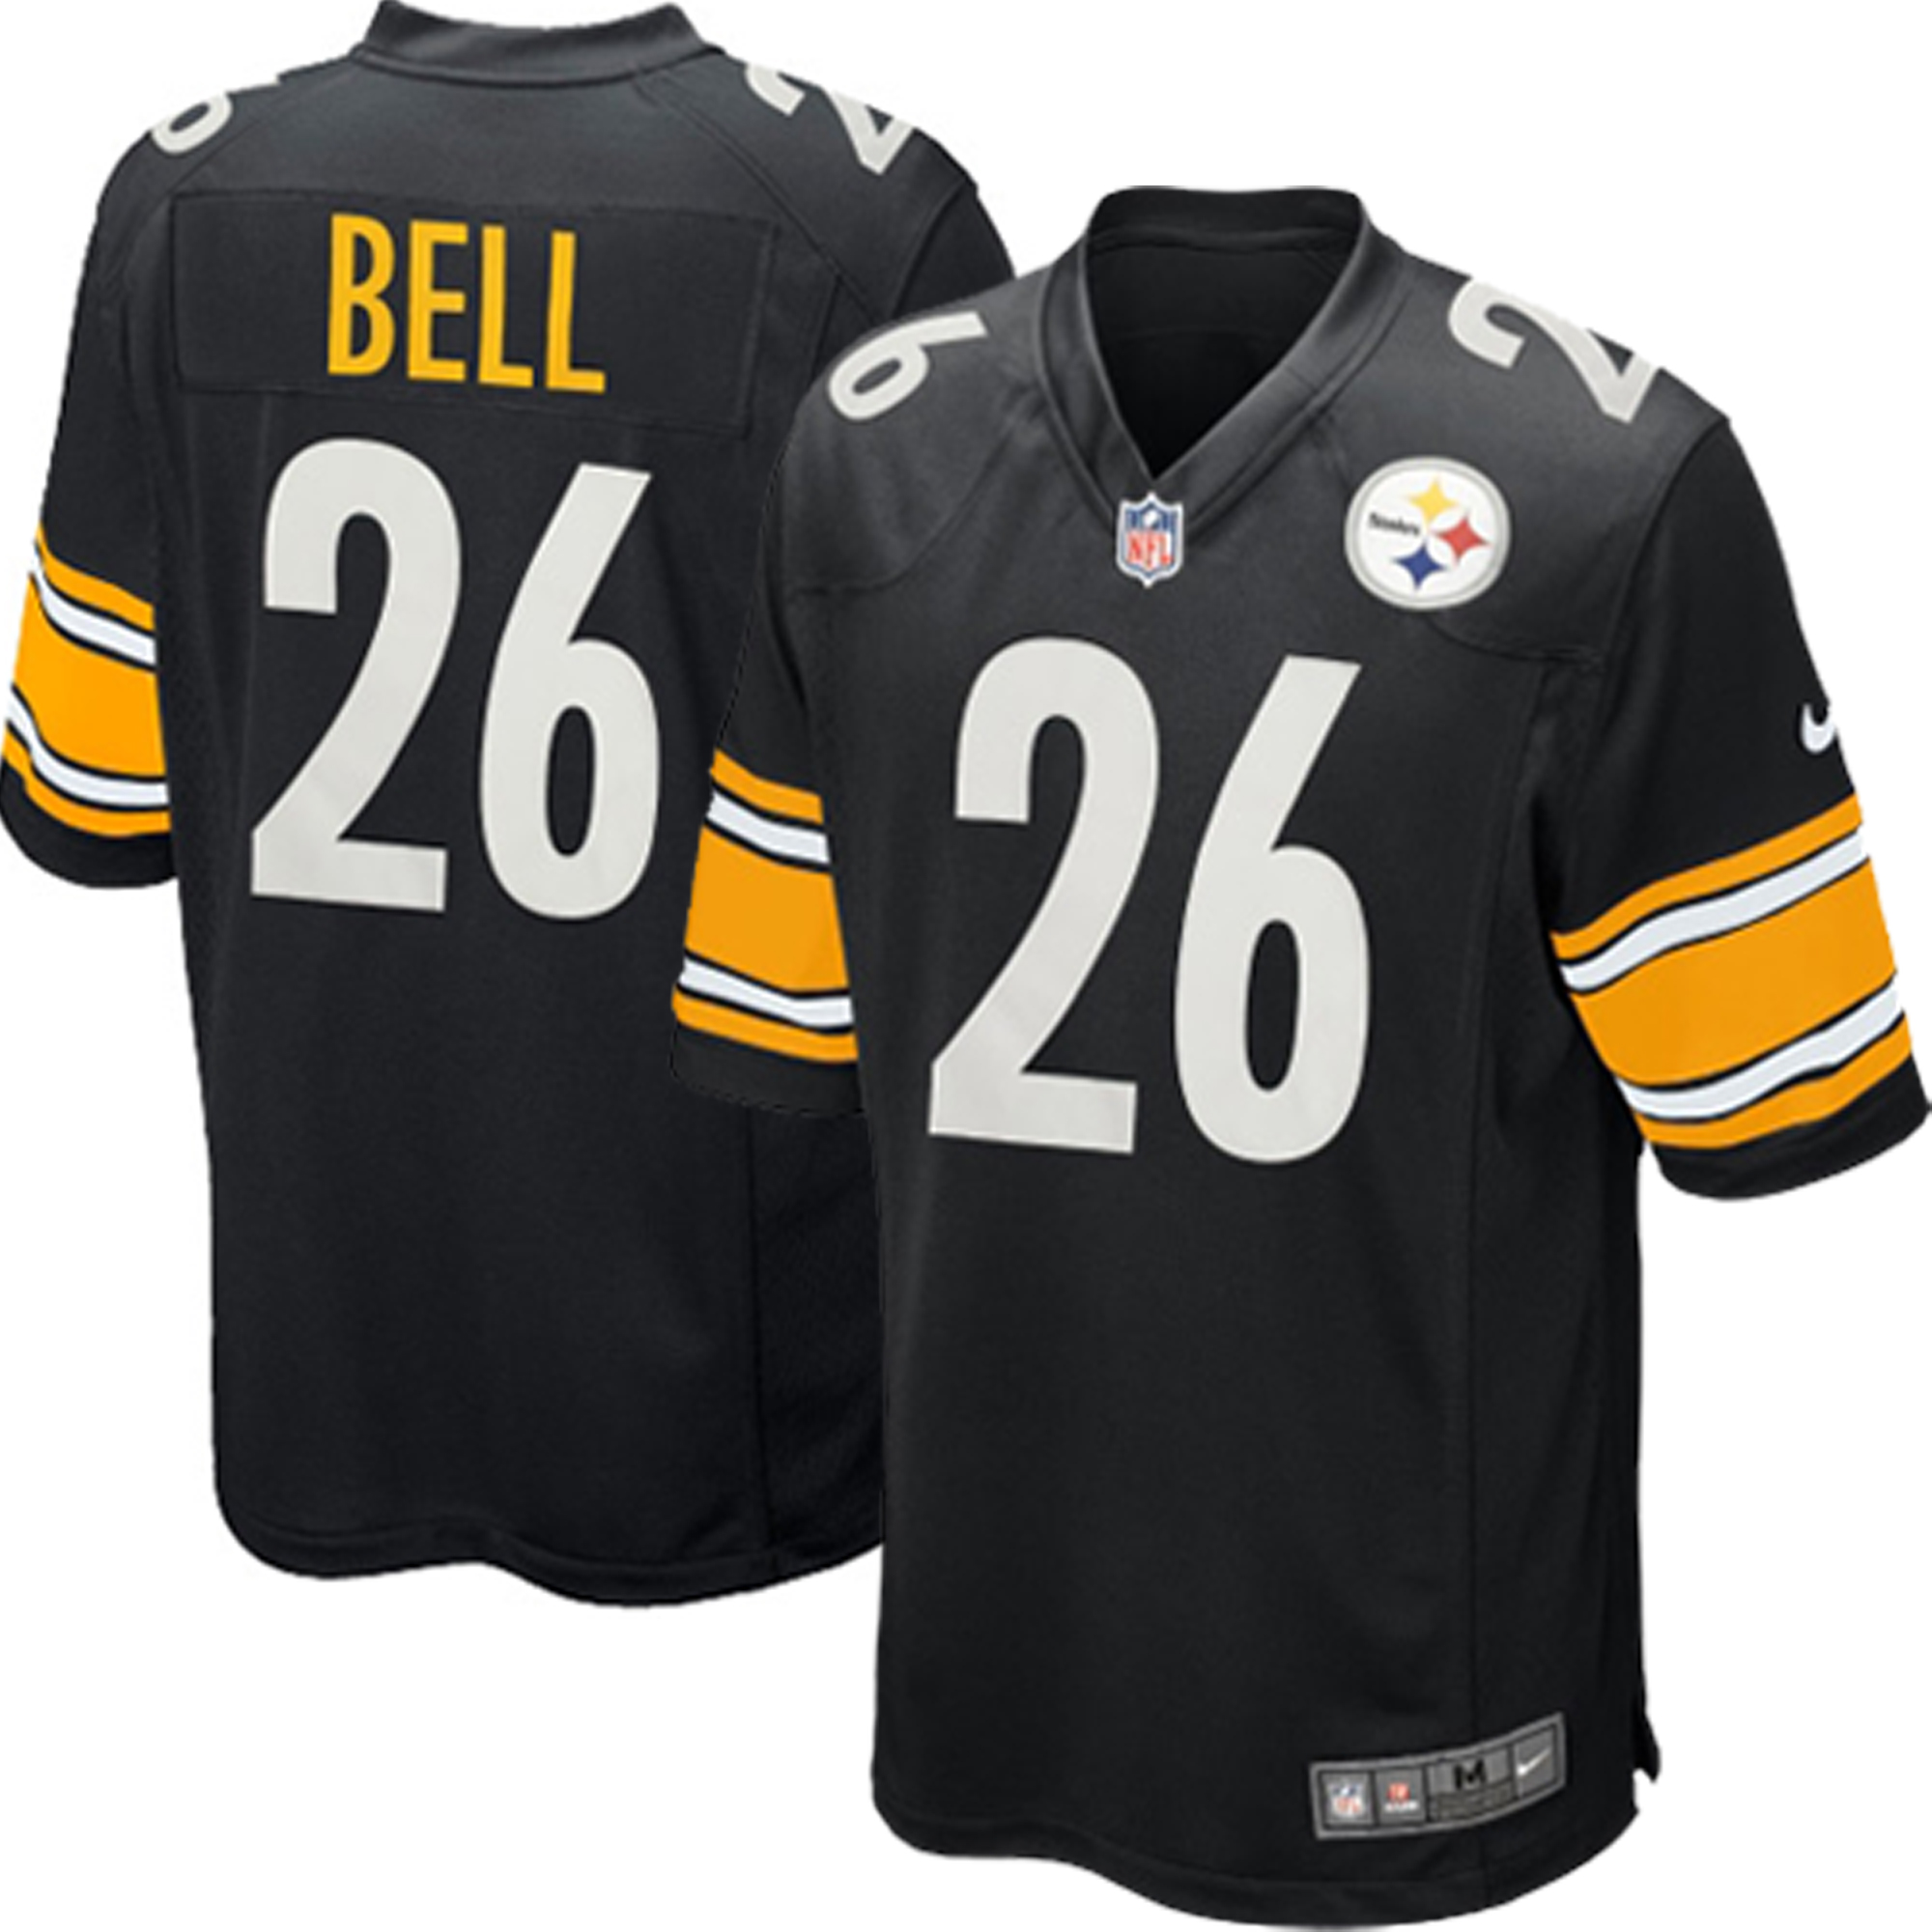 Le Veon Bell Pittsburgh Steelers Nike Youth Team Color Game Jersey ... ed69bf172